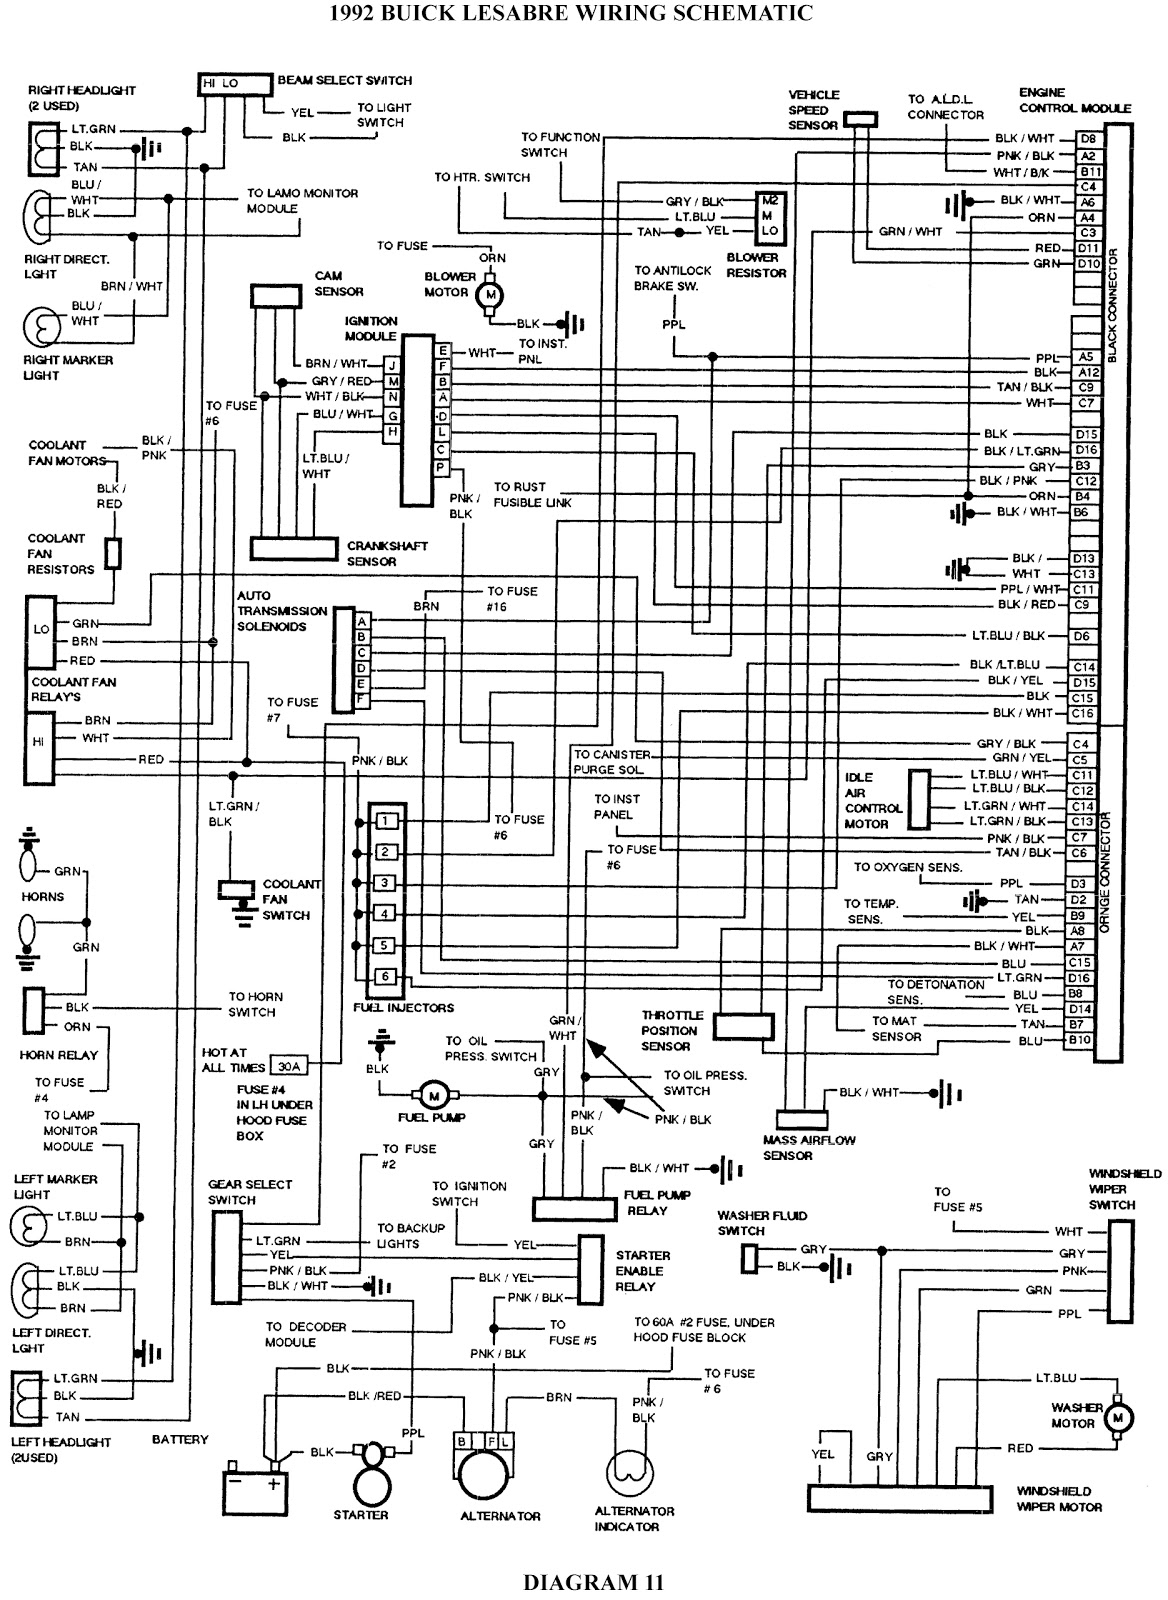 1991 buick park avenue engine diagram wiring schematic my wiring 1991 pontiac grand am  [ 1168 x 1600 Pixel ]